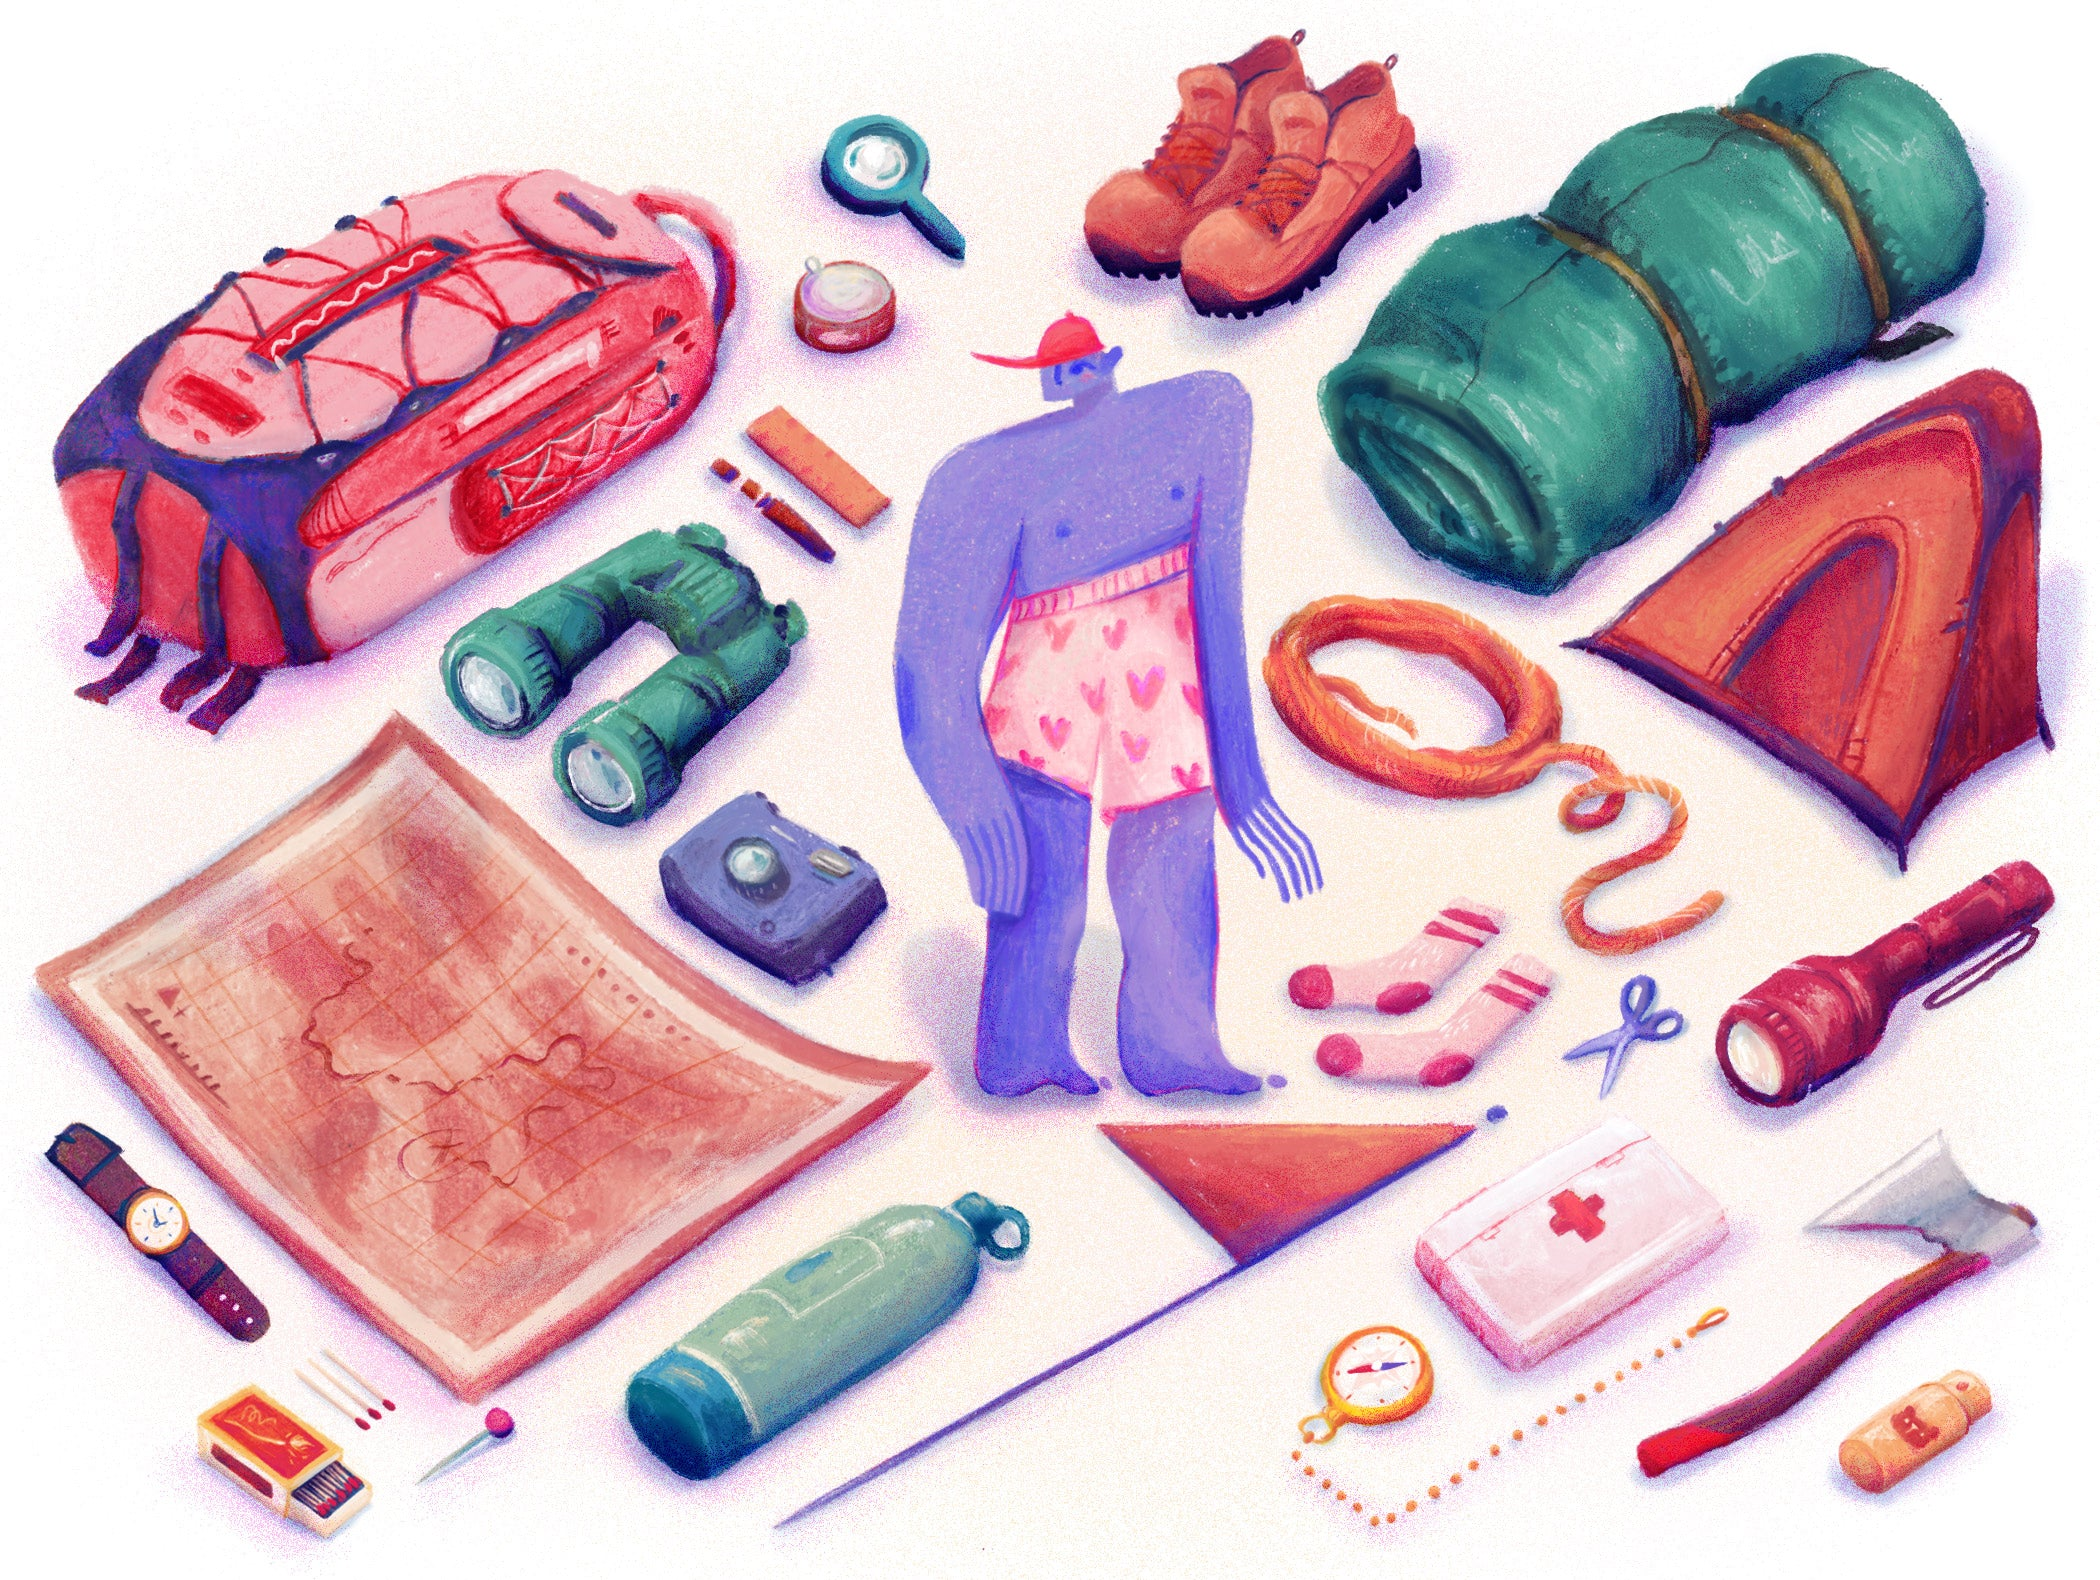 Illustration of a person glancing at a collection of tools in their backpack